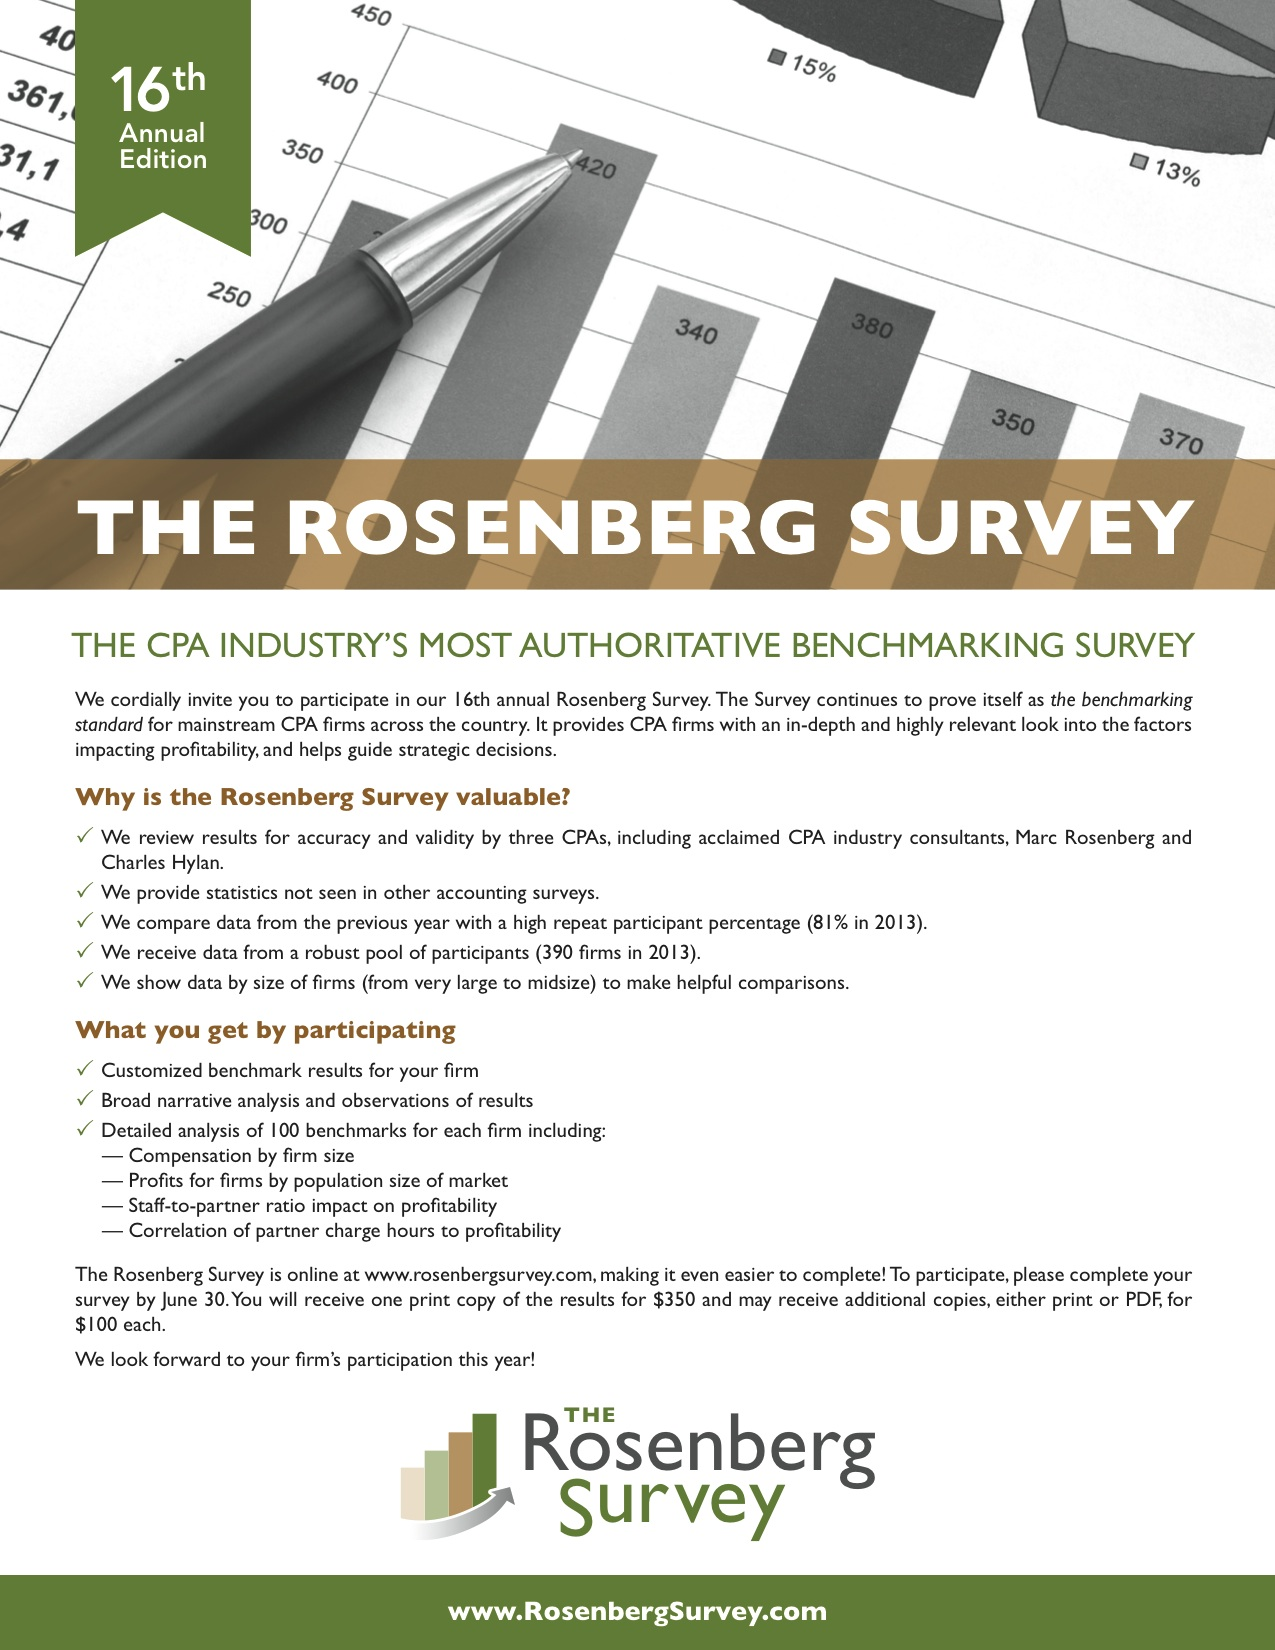 Rosenberg Information Sheet 2014